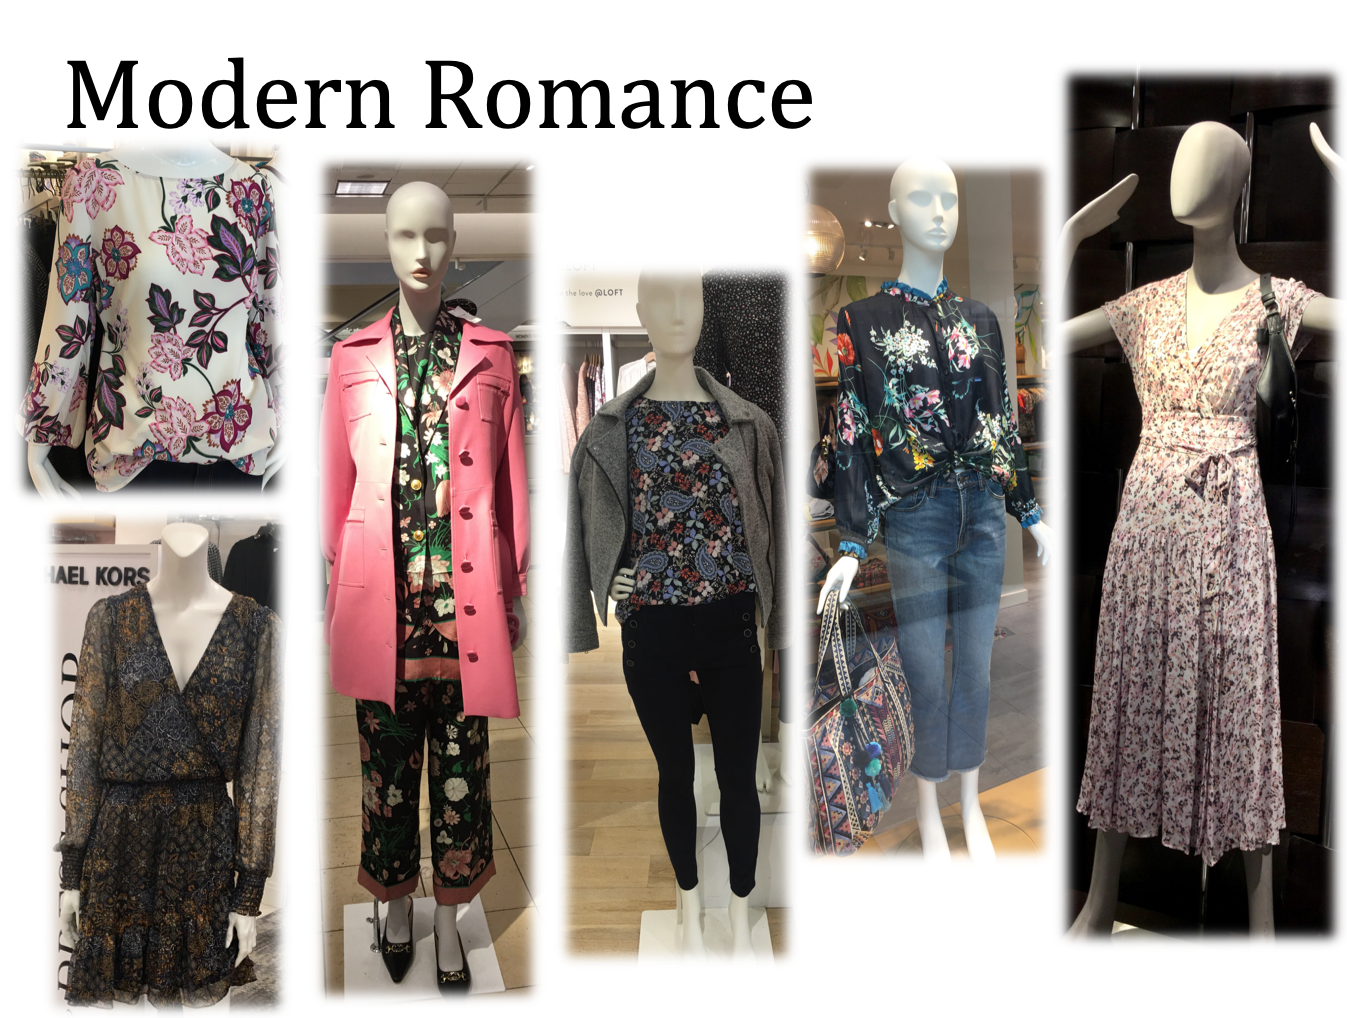 Floral's for winter with dark grounds gives a fresh take on this feminine vibe.